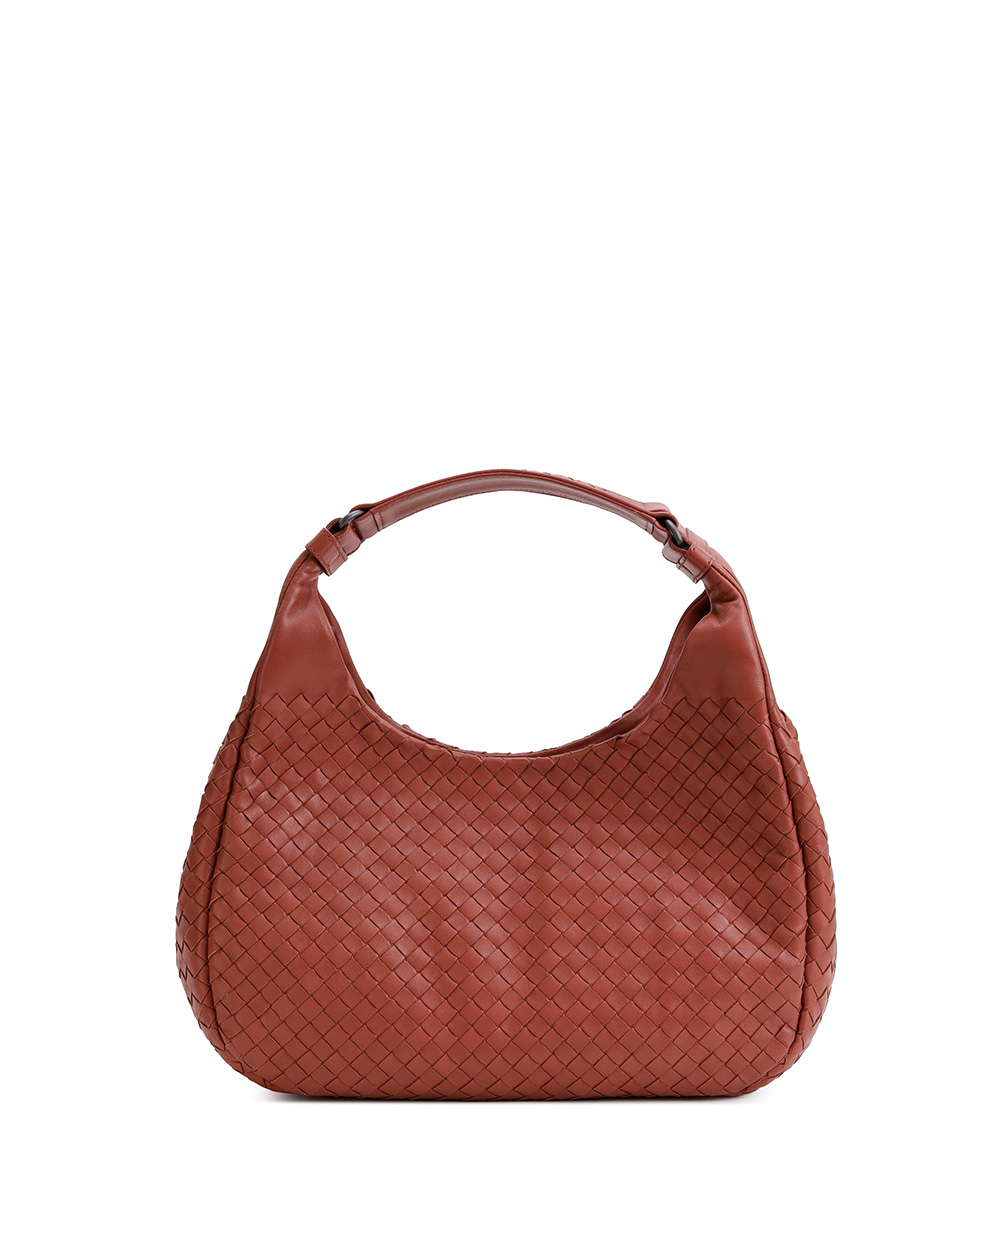 Intrecciato Leather Handbag 3